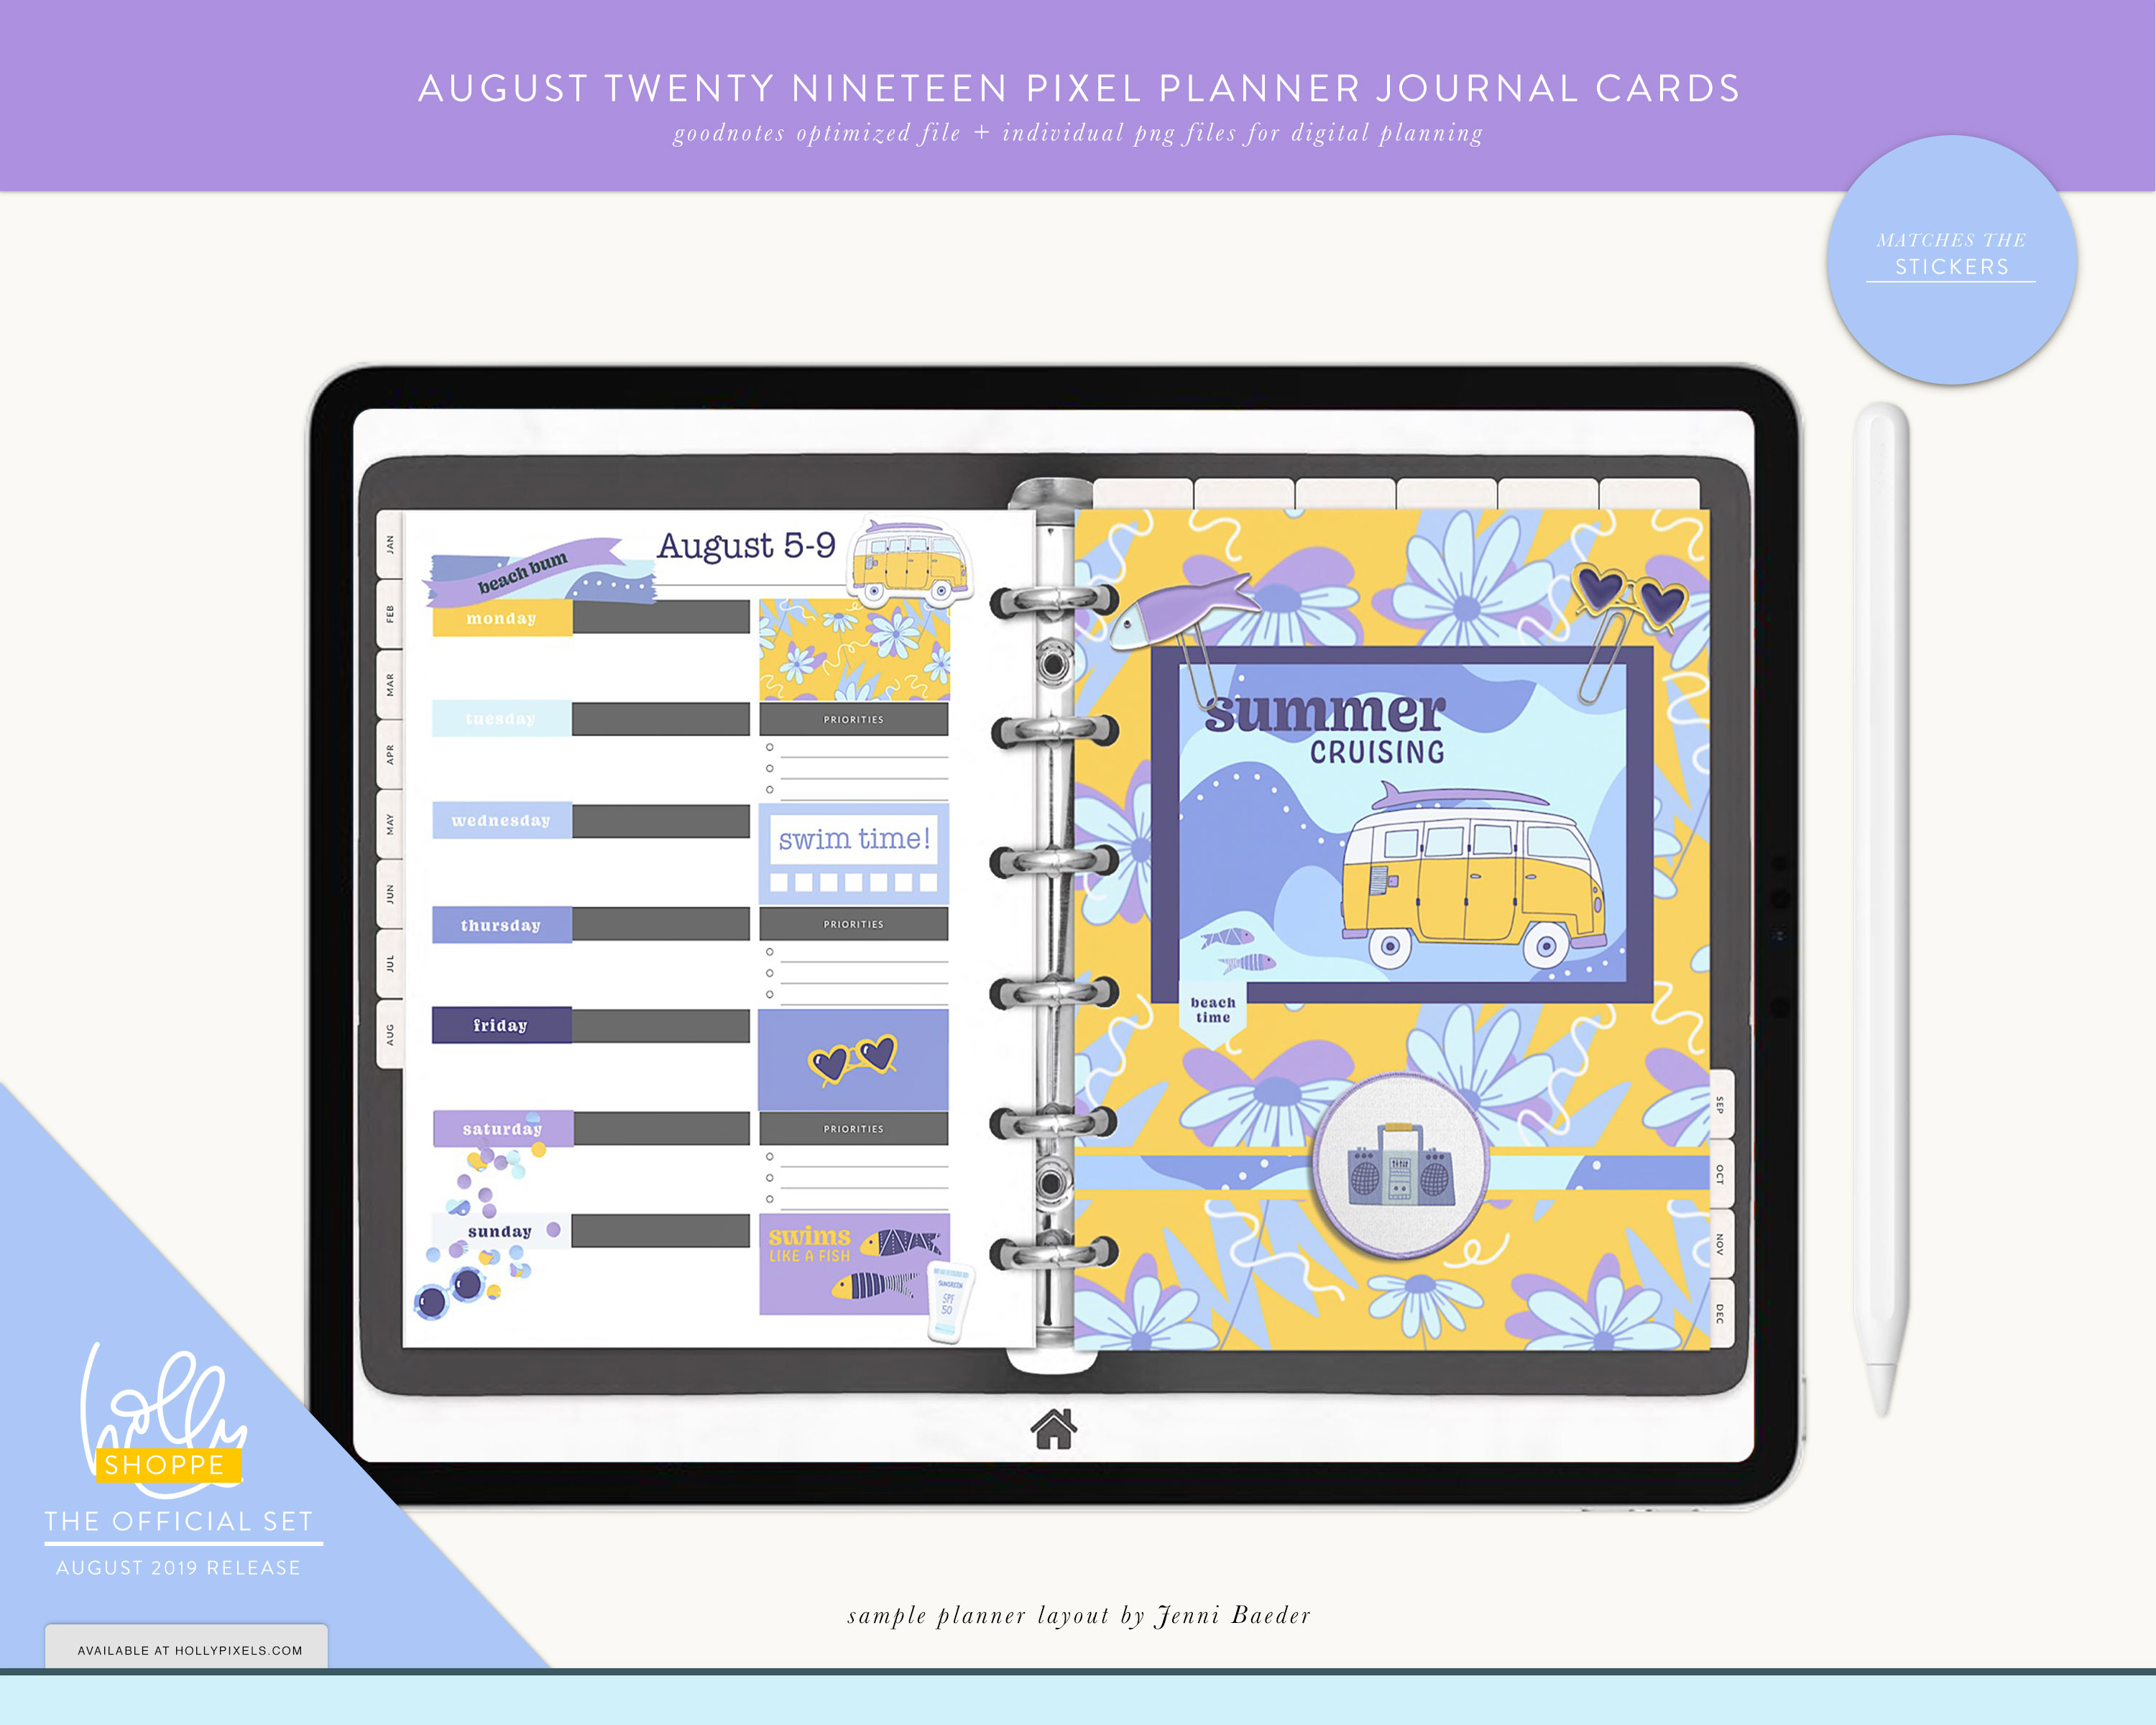 Plan Cute in August with Your Digital Planner 7